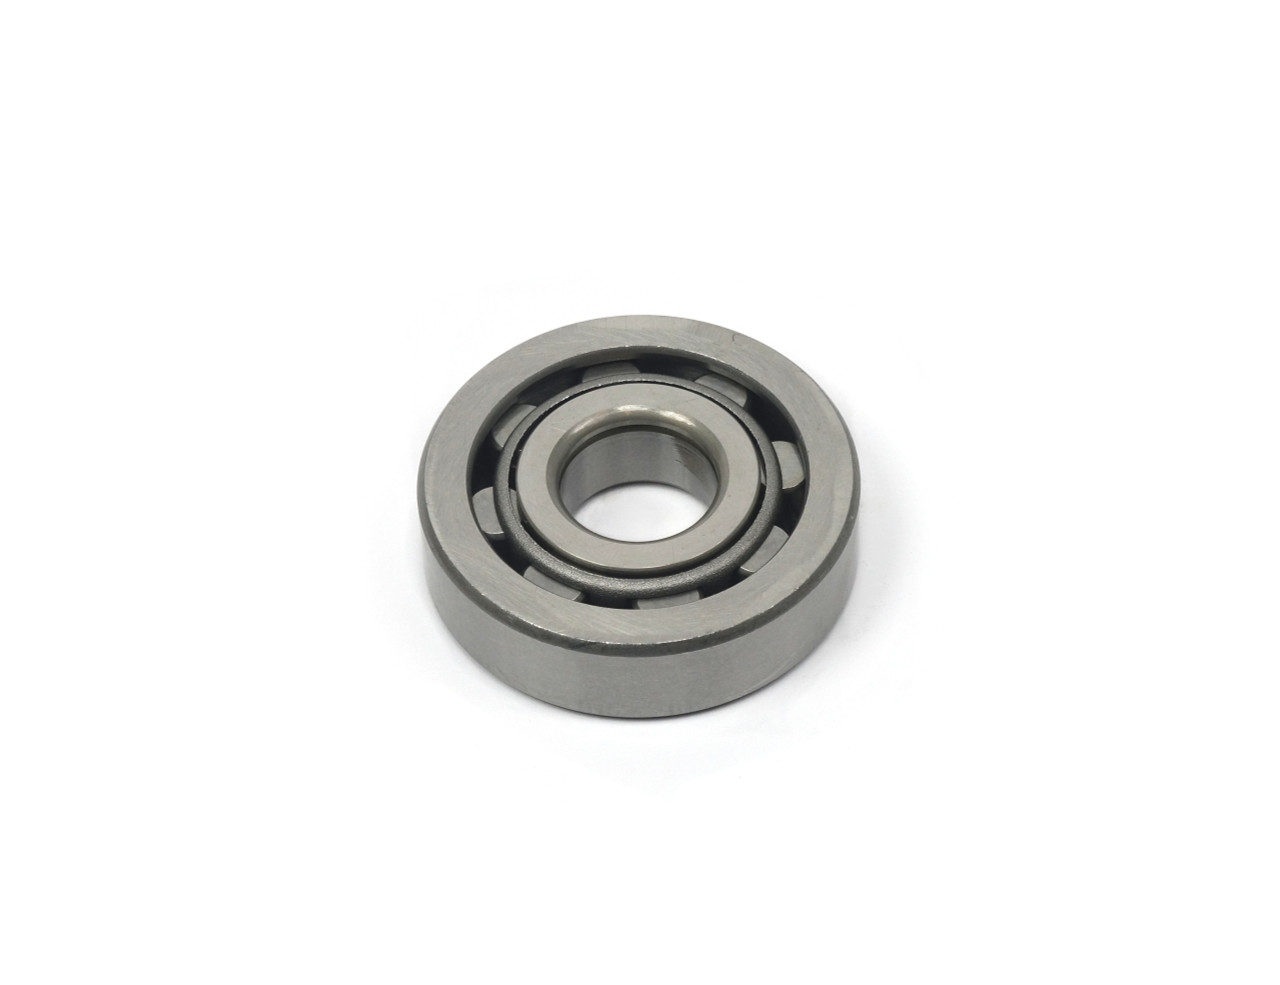 Transmission lower lay shaft rear bearing - Auto Ricambi FIAT 124 Spider, Sport Coupe, Spider 2000 and Pininfarina - 1971-1985 (5-speed transmission)